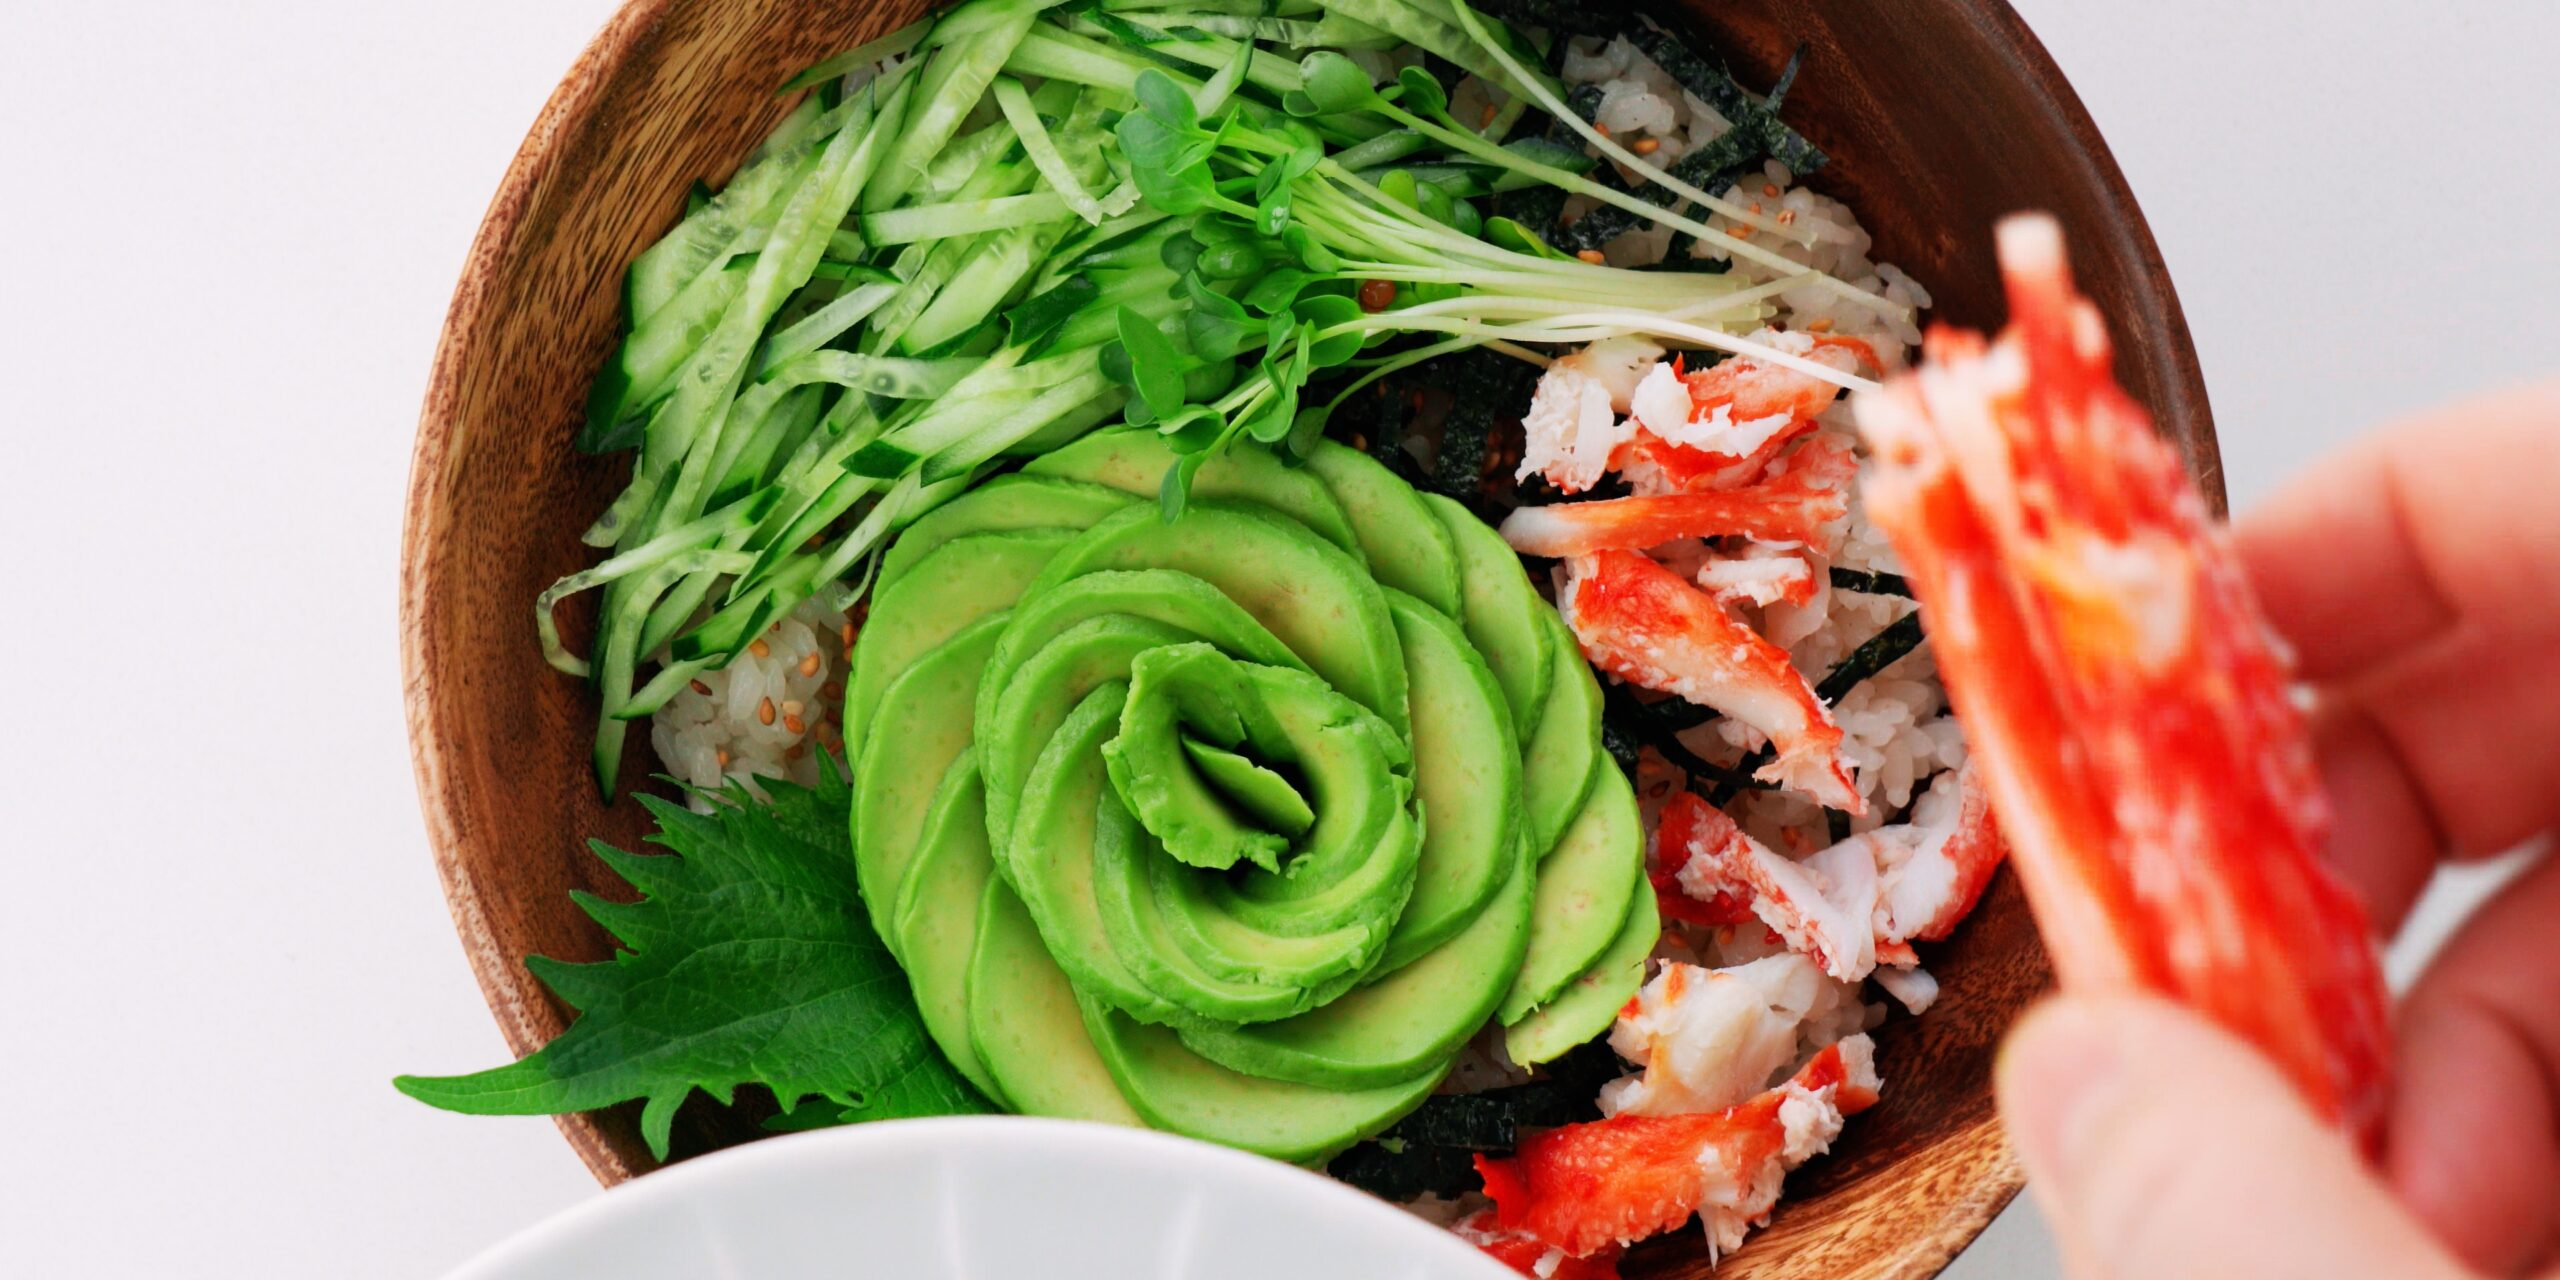 Avocado and crab on top of sushi rice.